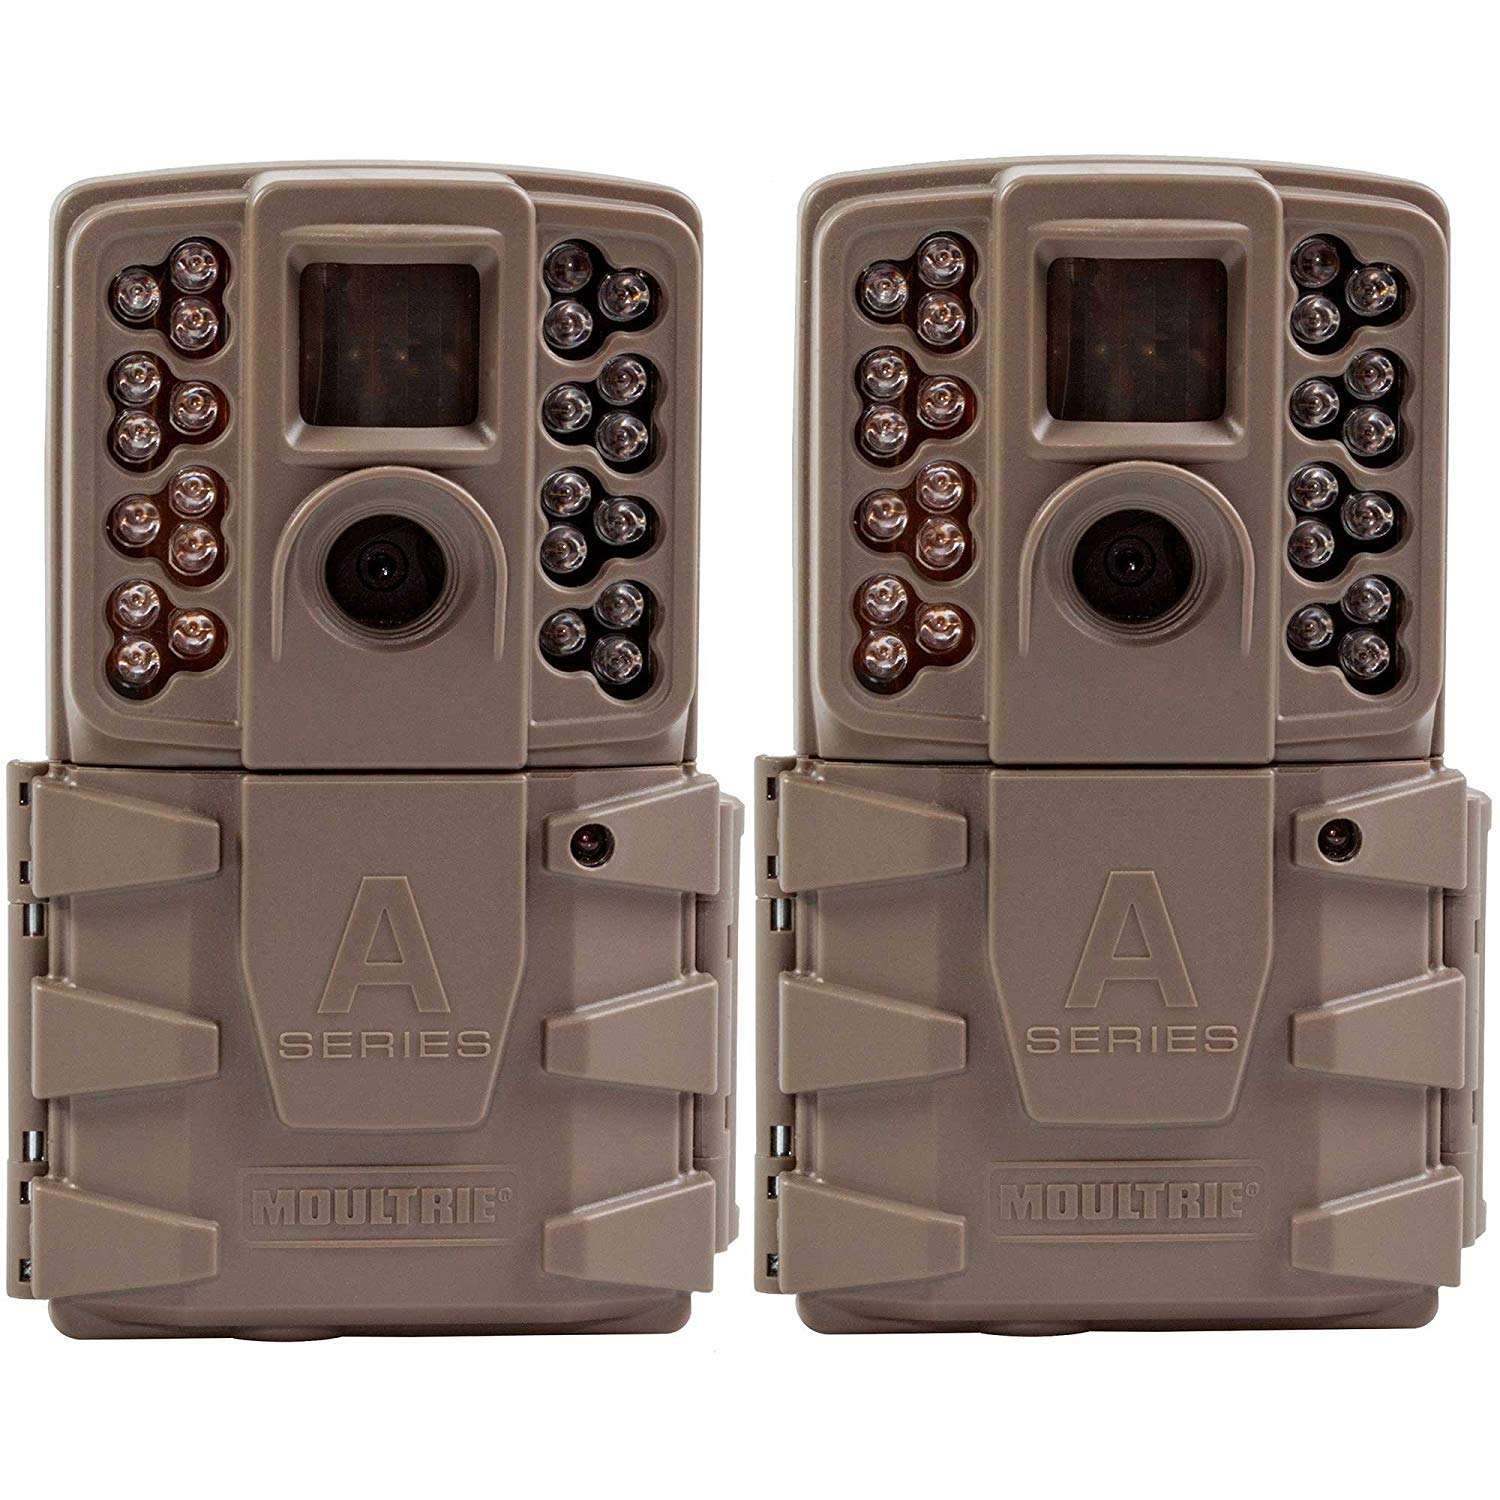 Moultrie A-30 12MP 60' HD Video Low Glow Infrared Game Trail Camera (2 Pack) by Moultrie